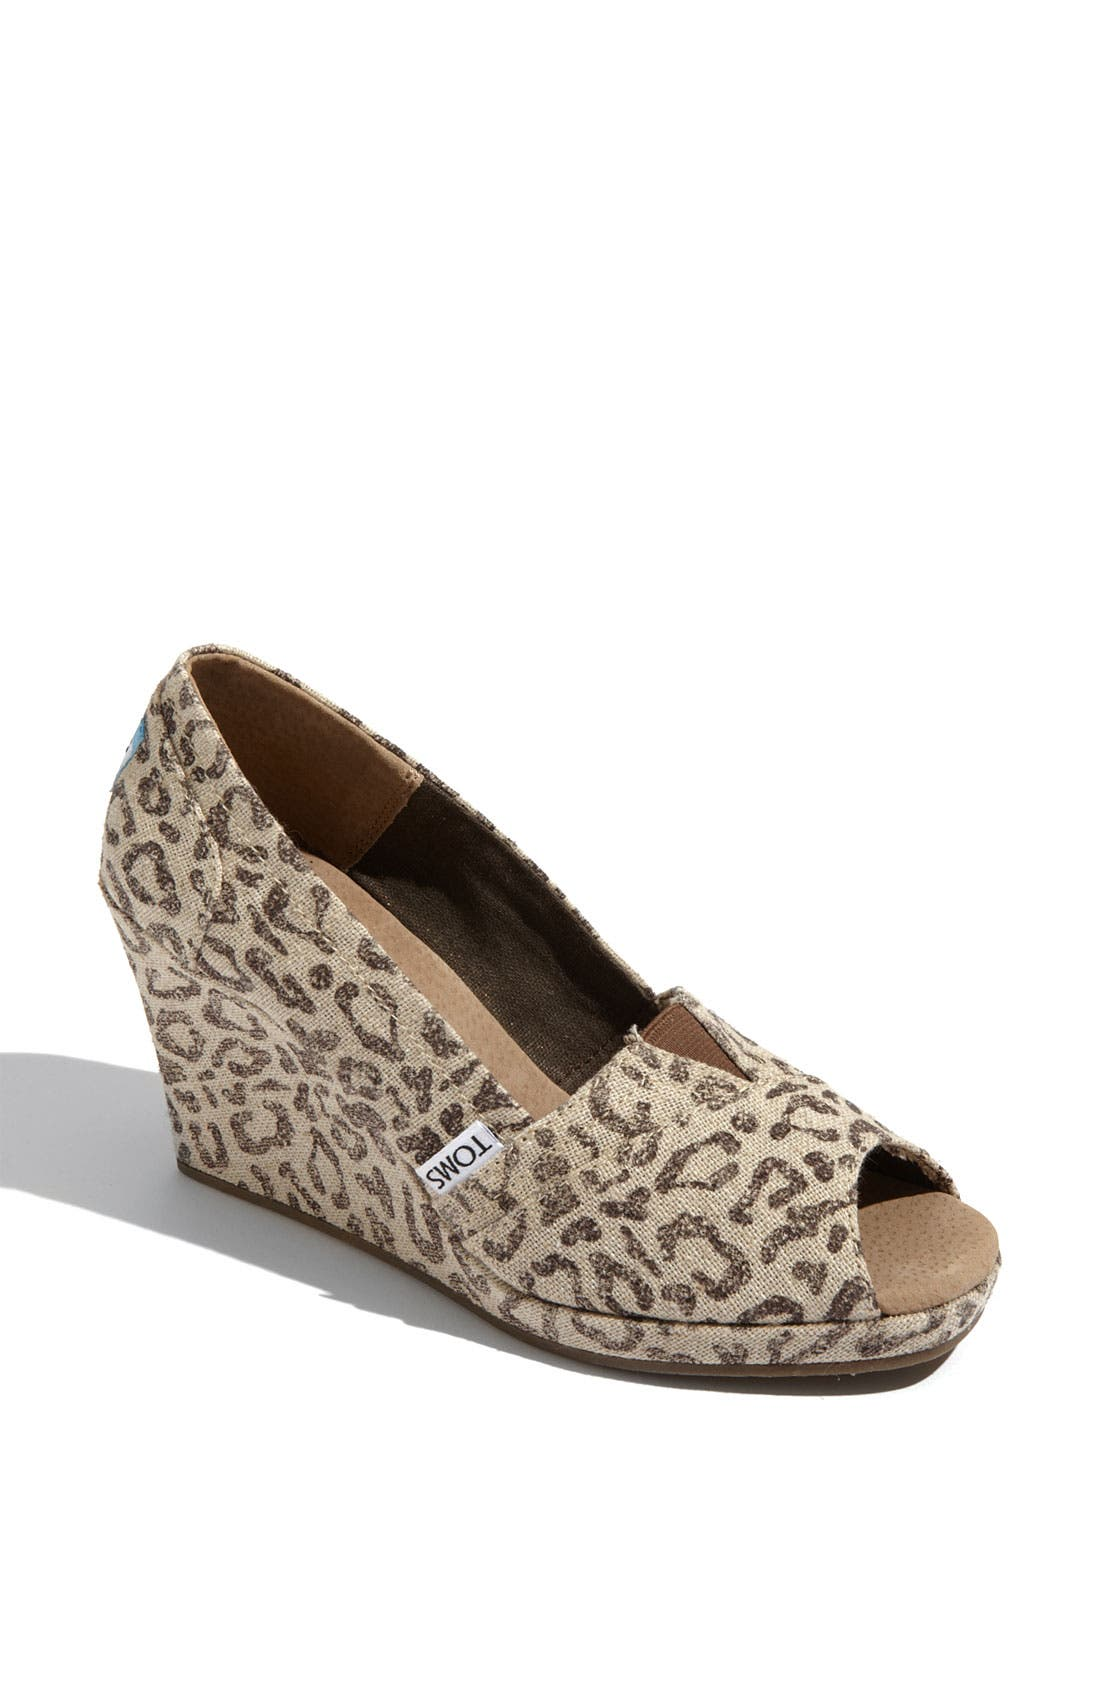 Alternate Image 1 Selected - TOMS 'Snow Leopard' Burlap Wedge